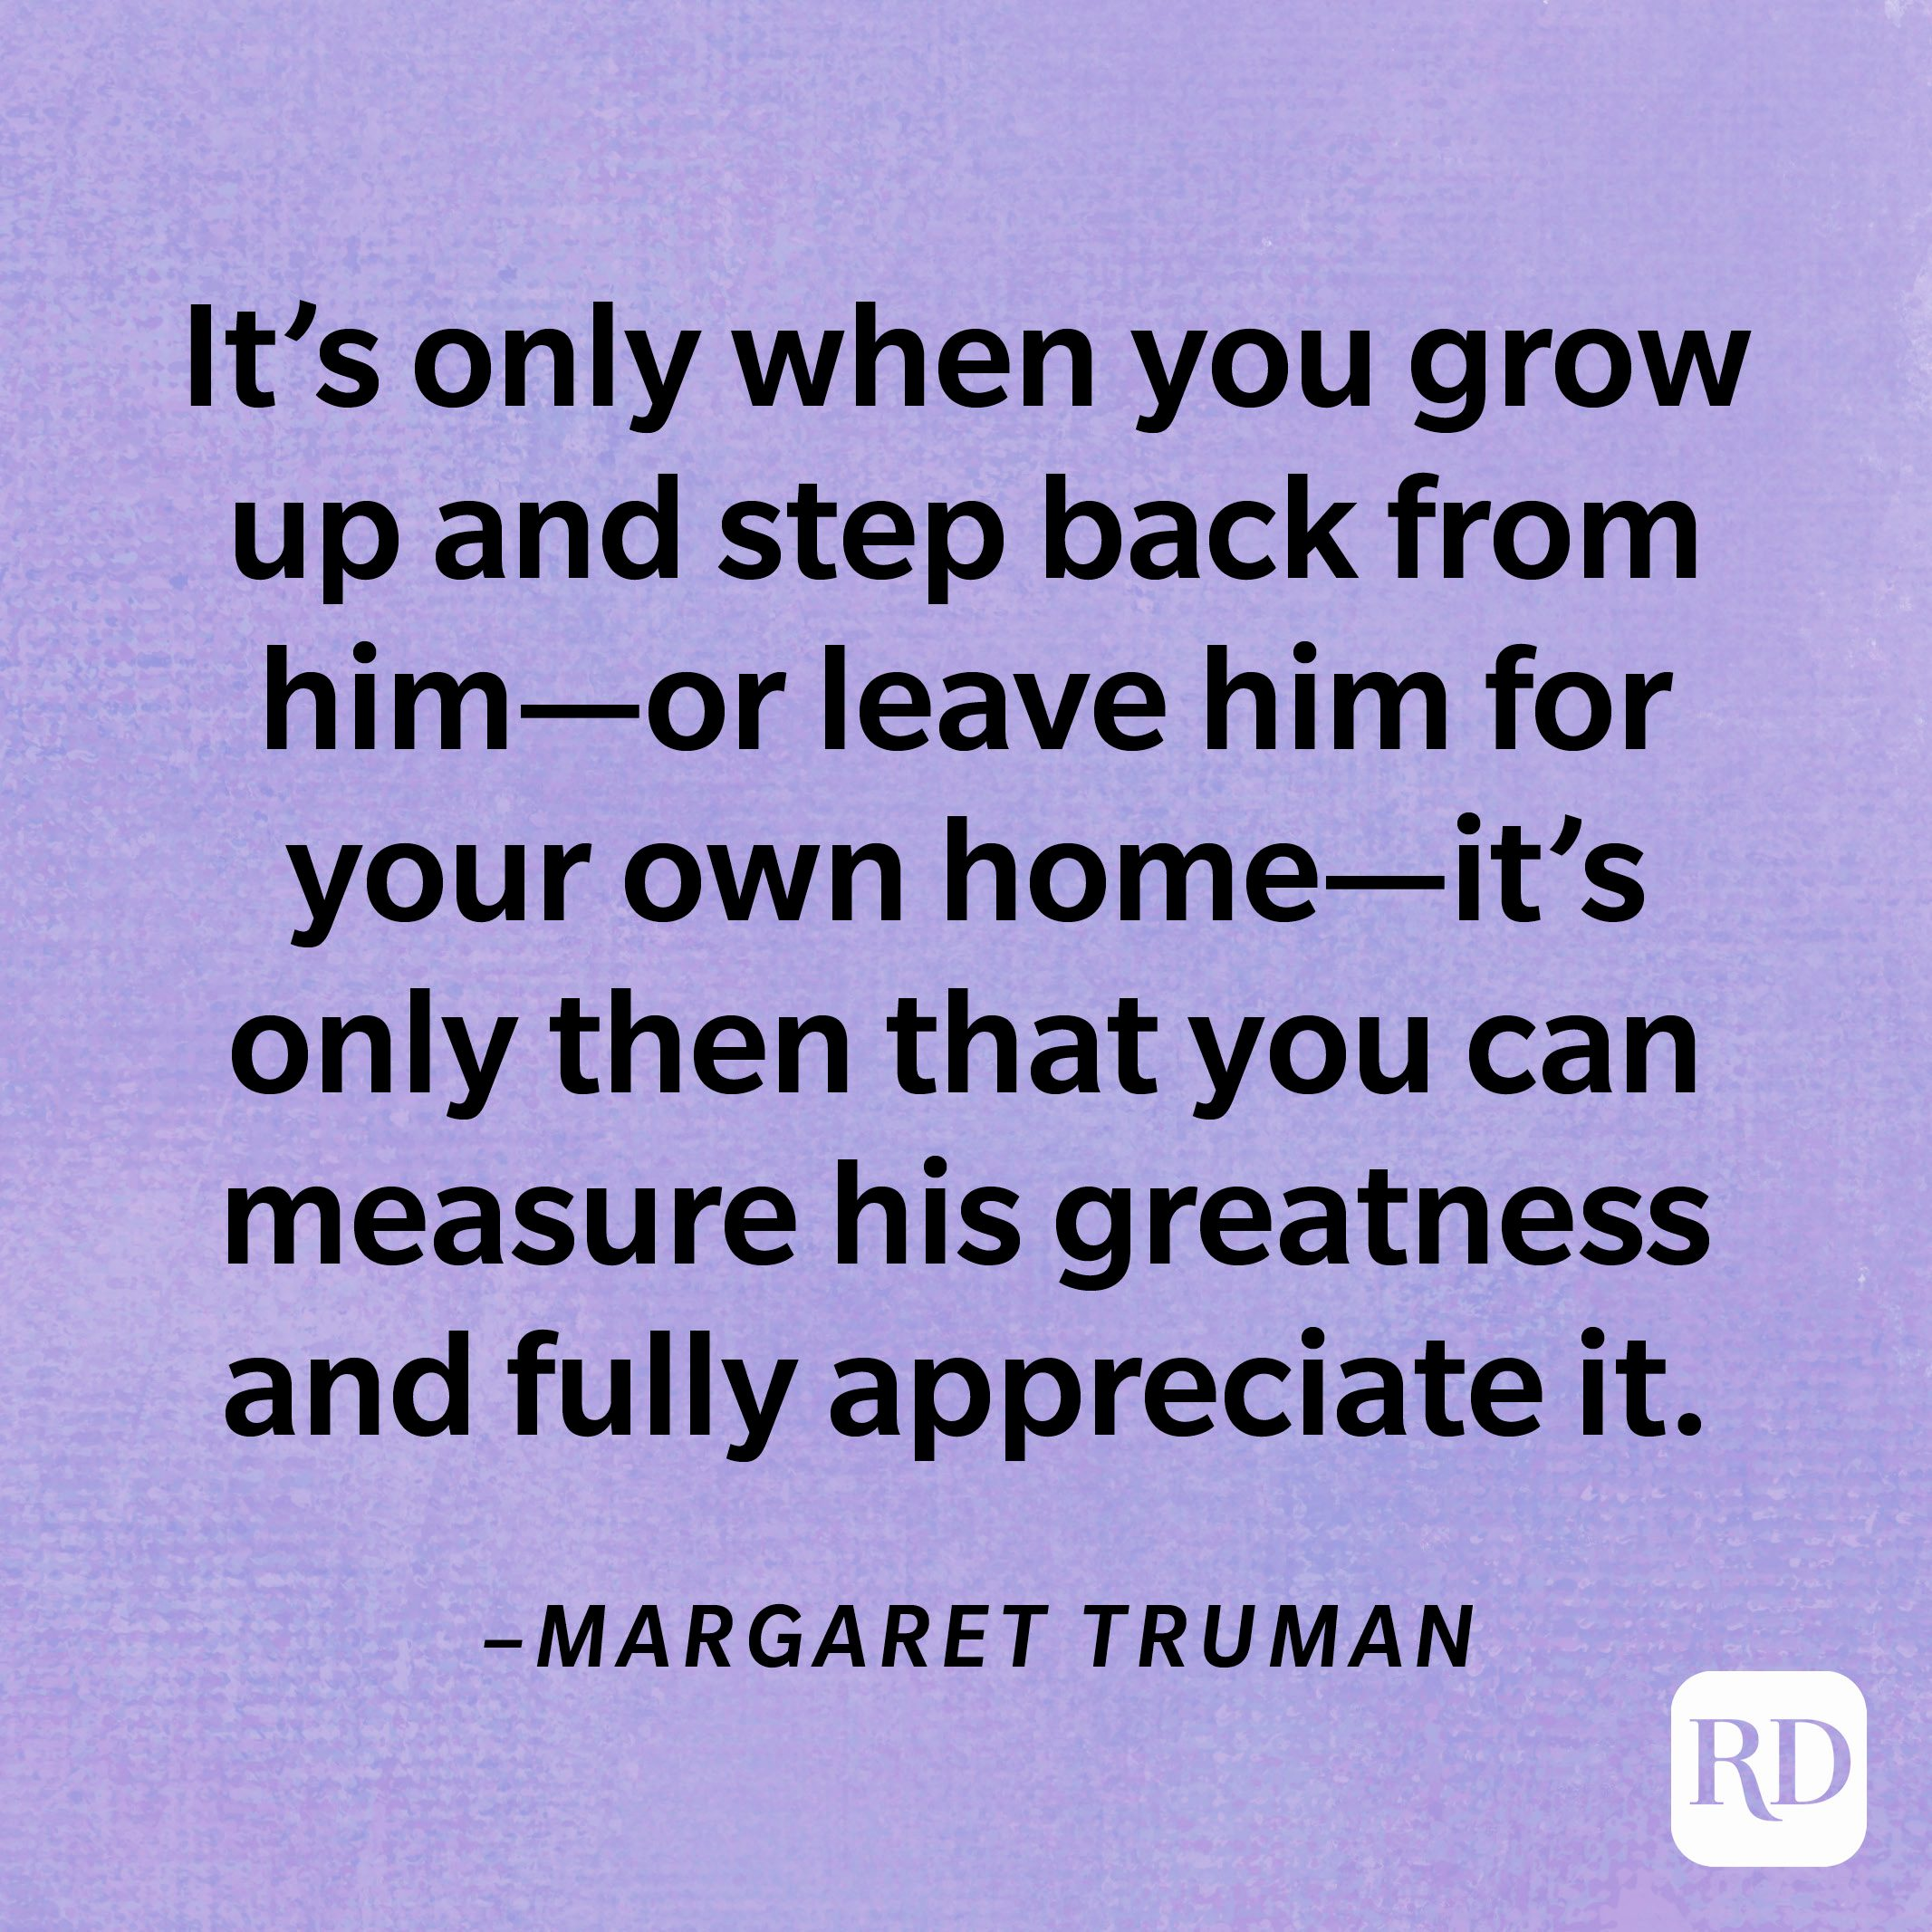 """""""It's only when you grow up and step back from him—or leave him for your own home—it's only then that you can measure his greatness and fully appreciate it.""""—Margaret Truman"""